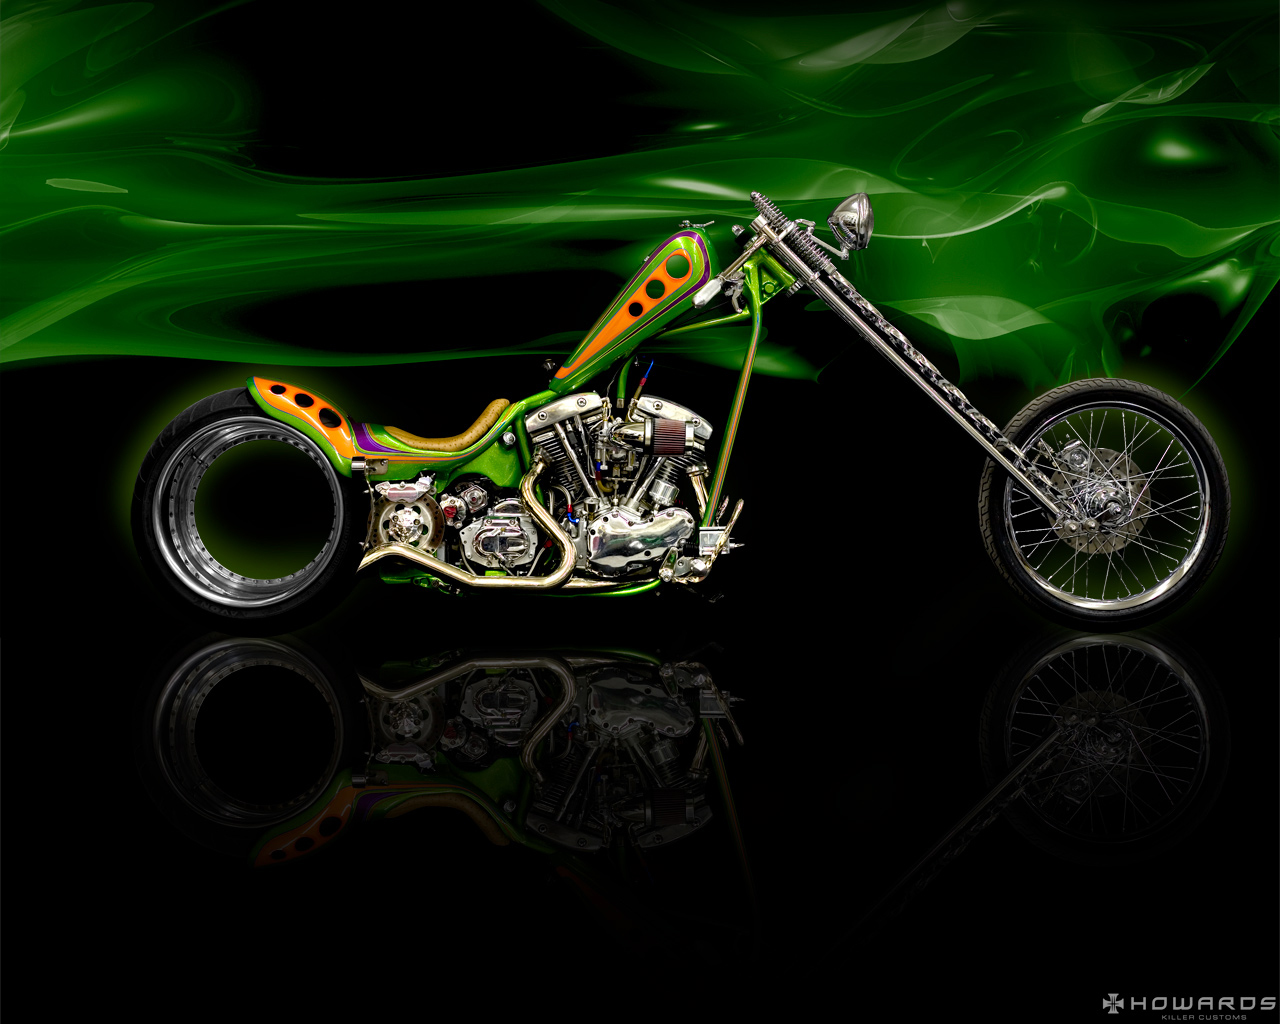 Free Download Harley Davidson Chopper Exclusive Hd